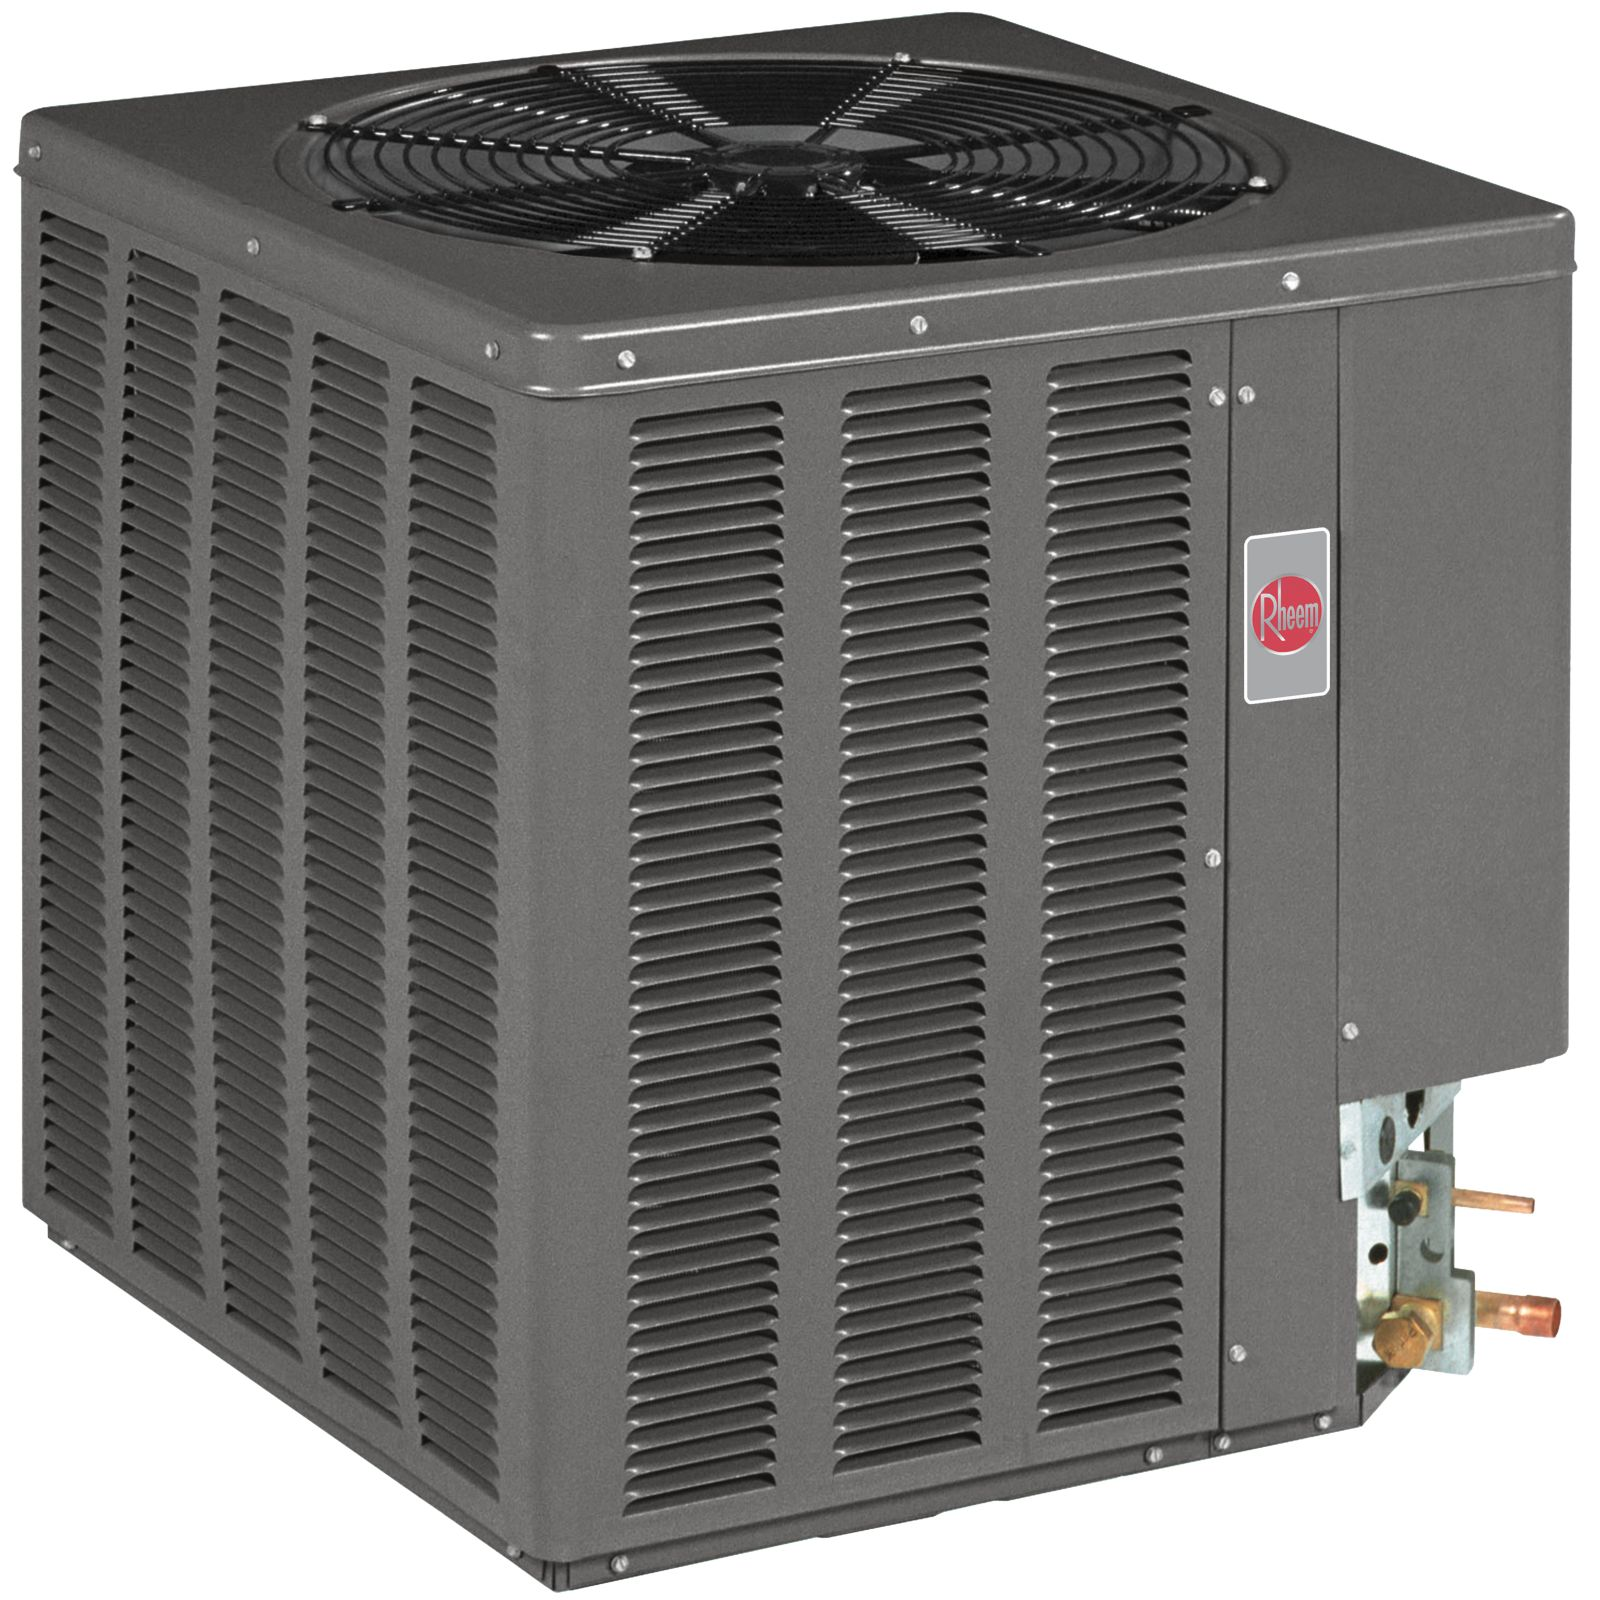 Rheem 14PJM36A01 - Value Series 3 Ton, 14 SEER, R410A Heat Pump